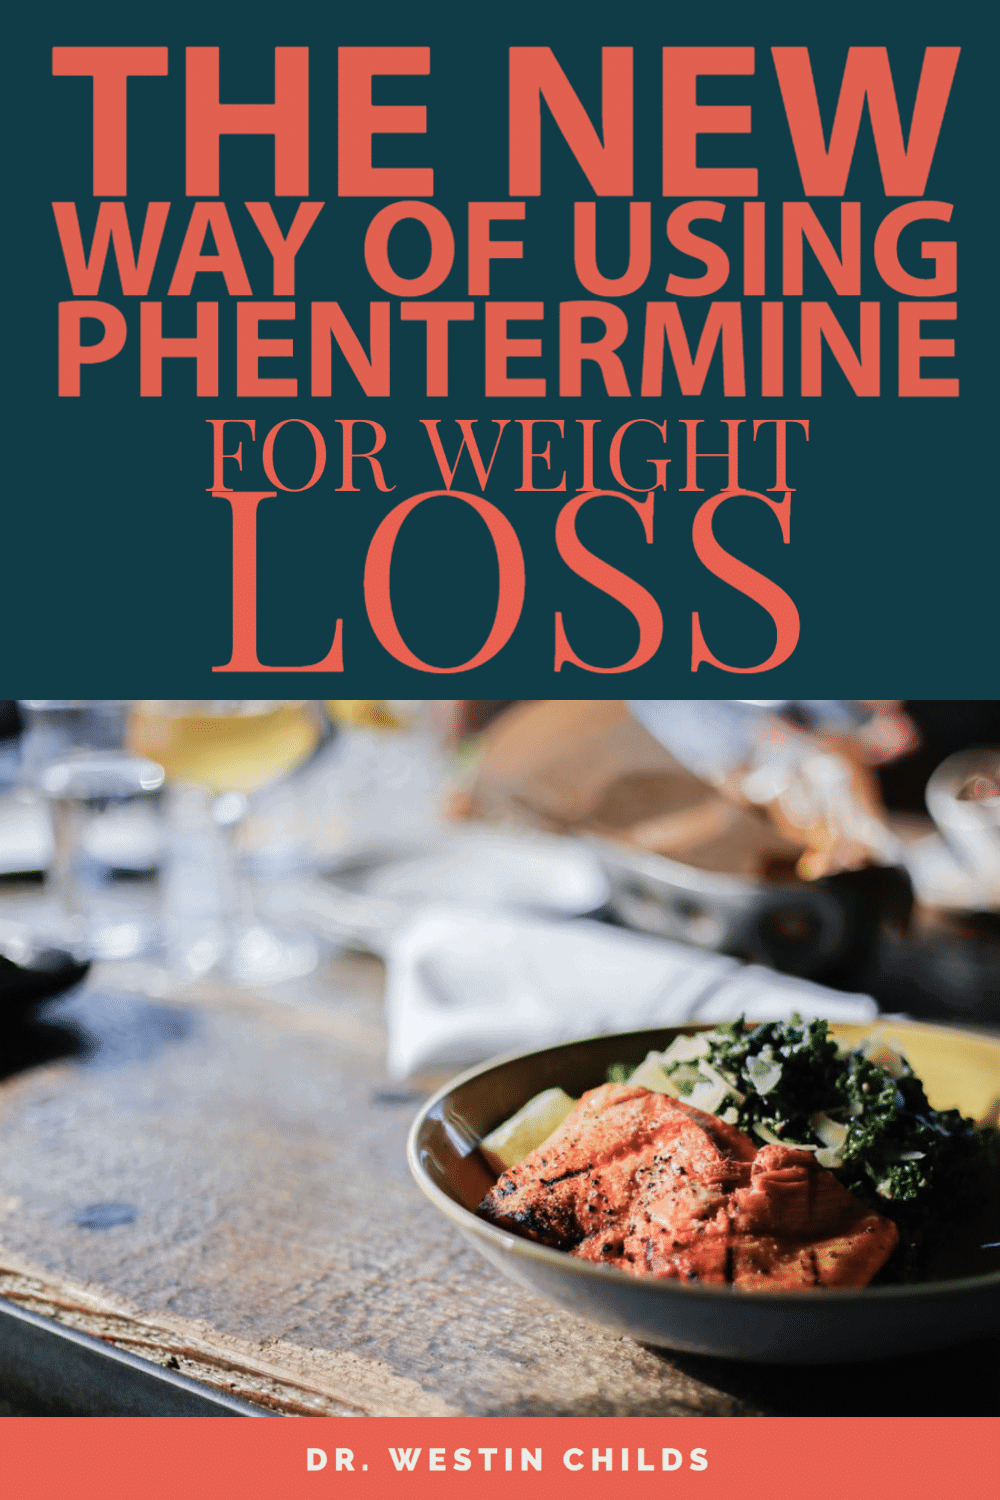 the new way of using phentermine for weight loss